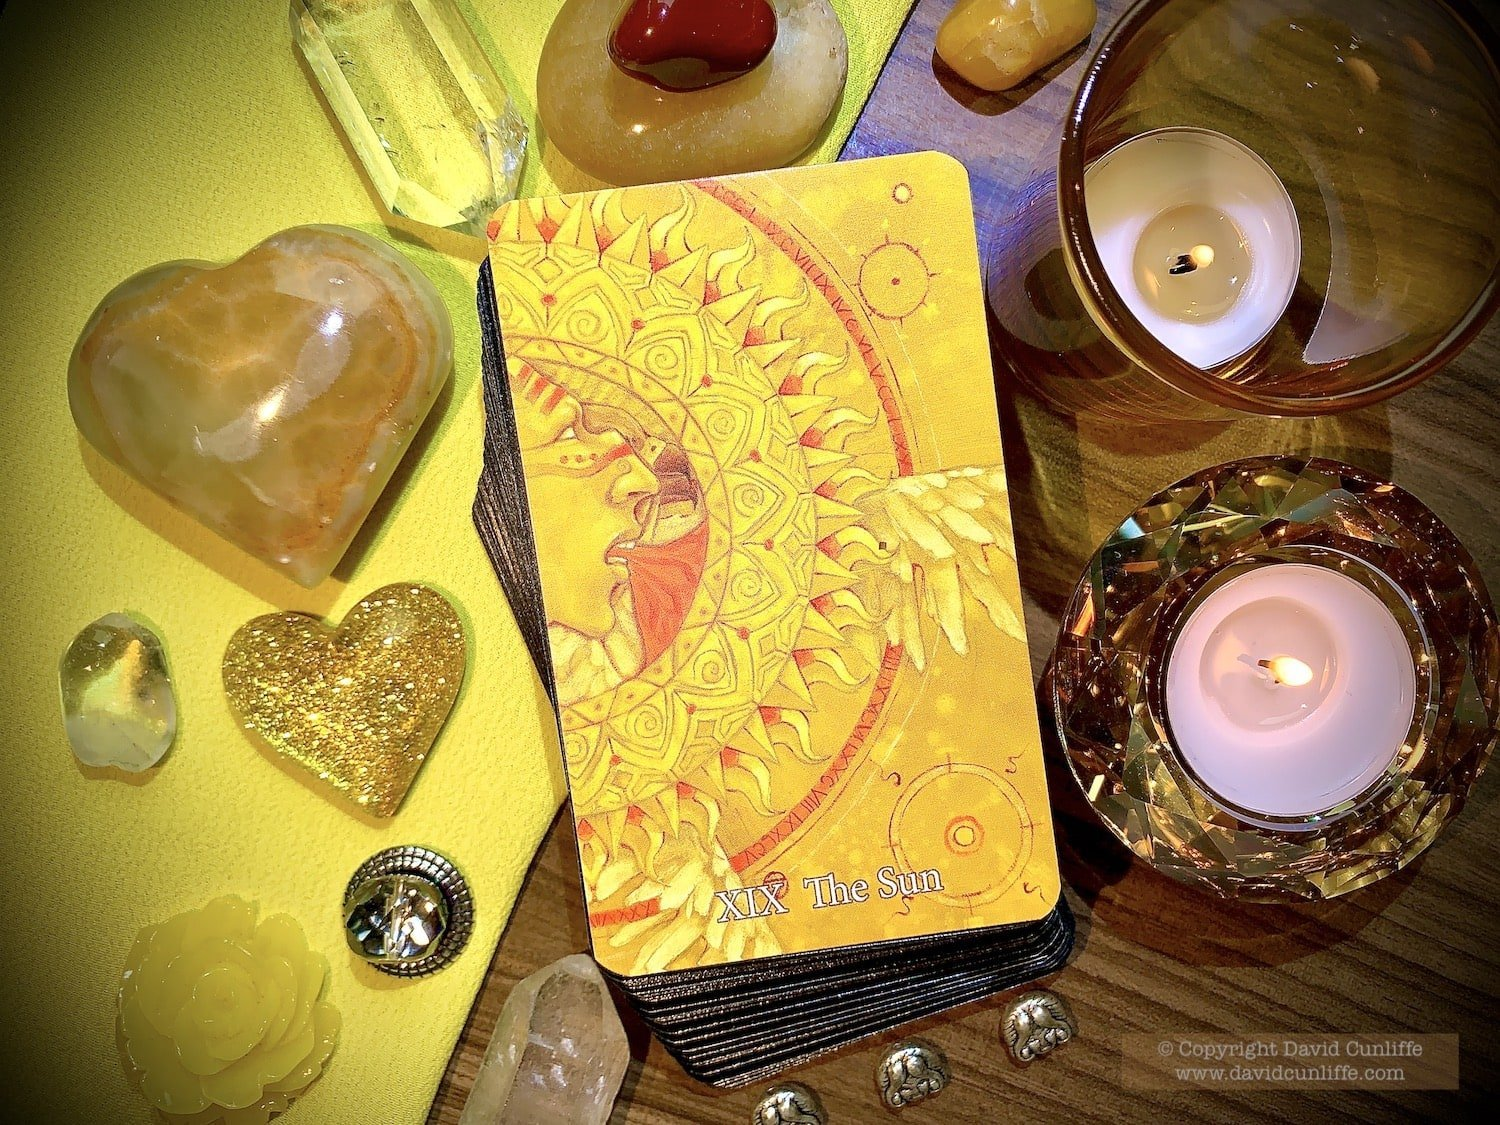 Tarot: The Sun Card